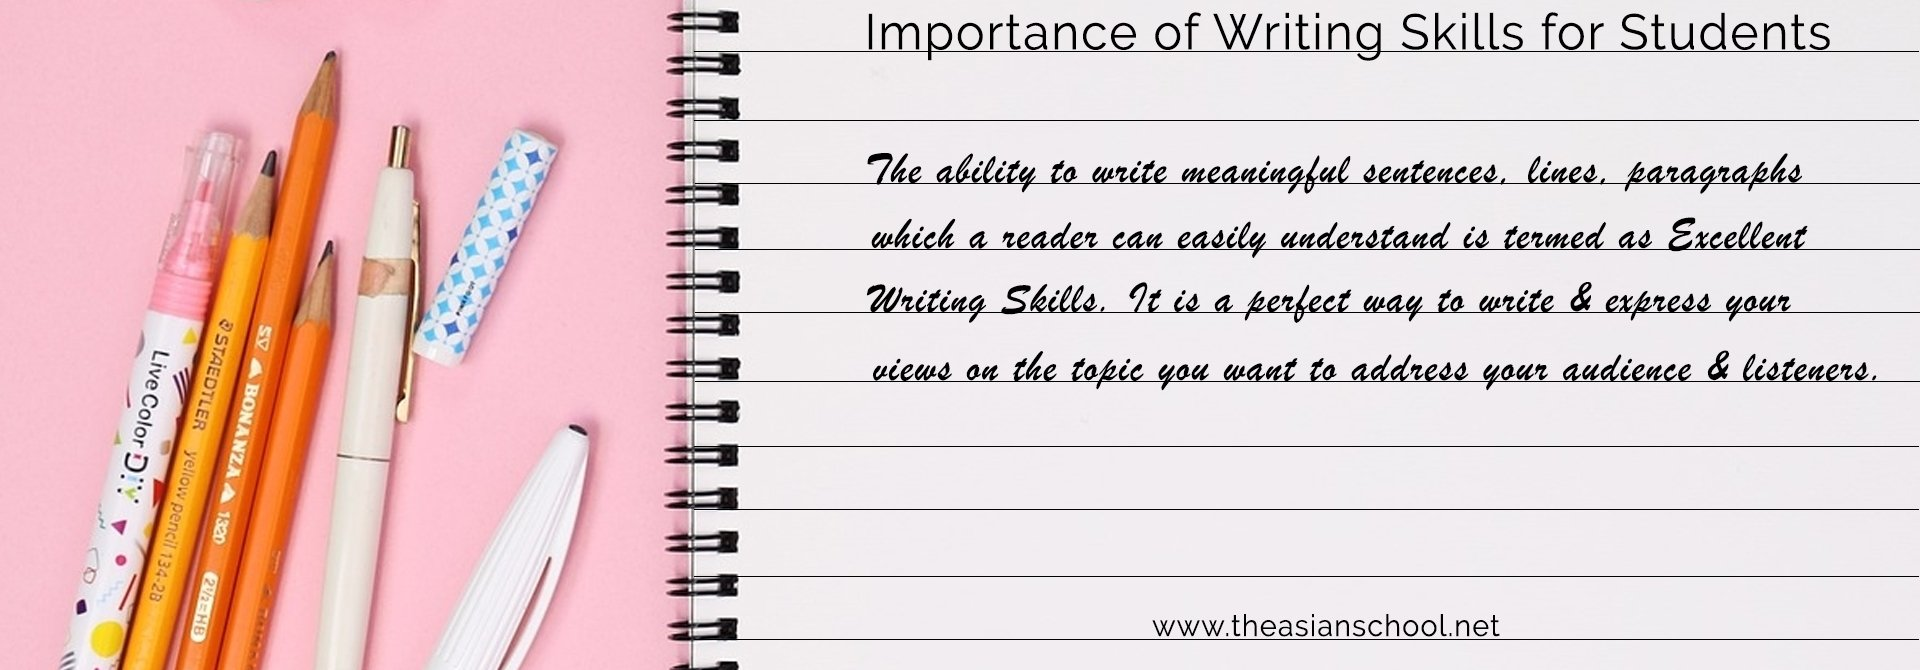 Importance of Writing Skills for Students